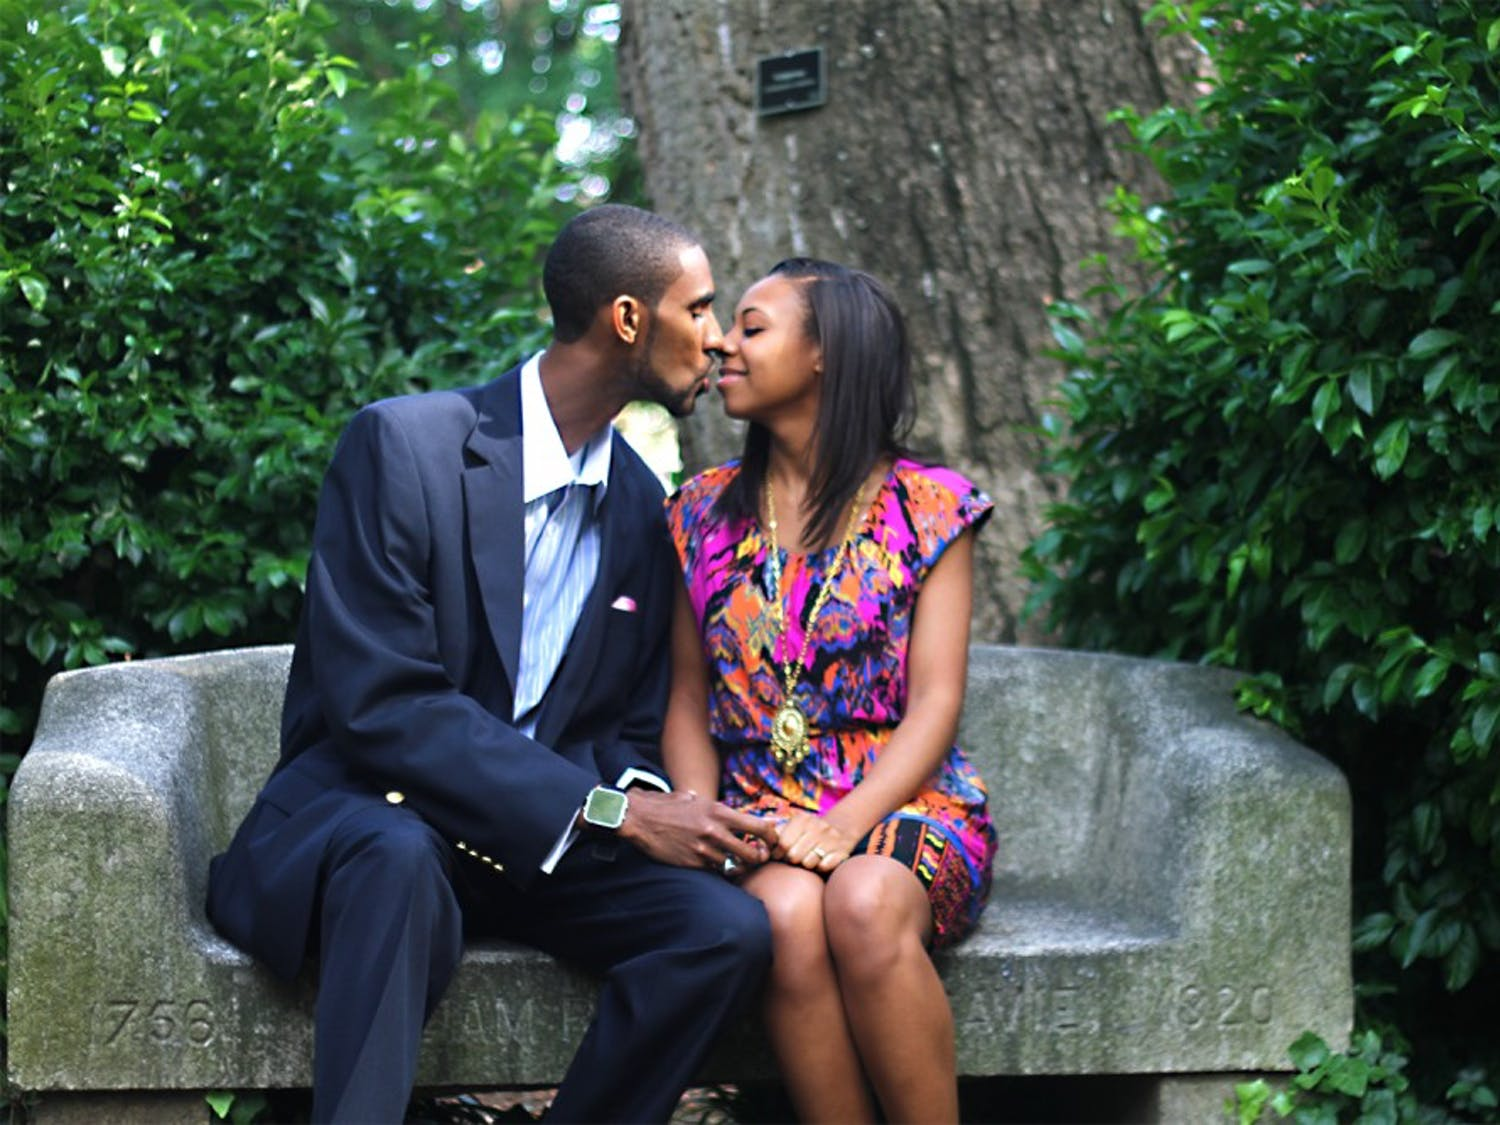 Warche Downing, a 2013 graduate of the Univeristy of North Carolina at Chapel Hill, travelled back to his alma mater in order to propose to his girlfriend, Briana Roach. They share a kiss on the Davie Poplar bench fulfilling the superstition of marriage.